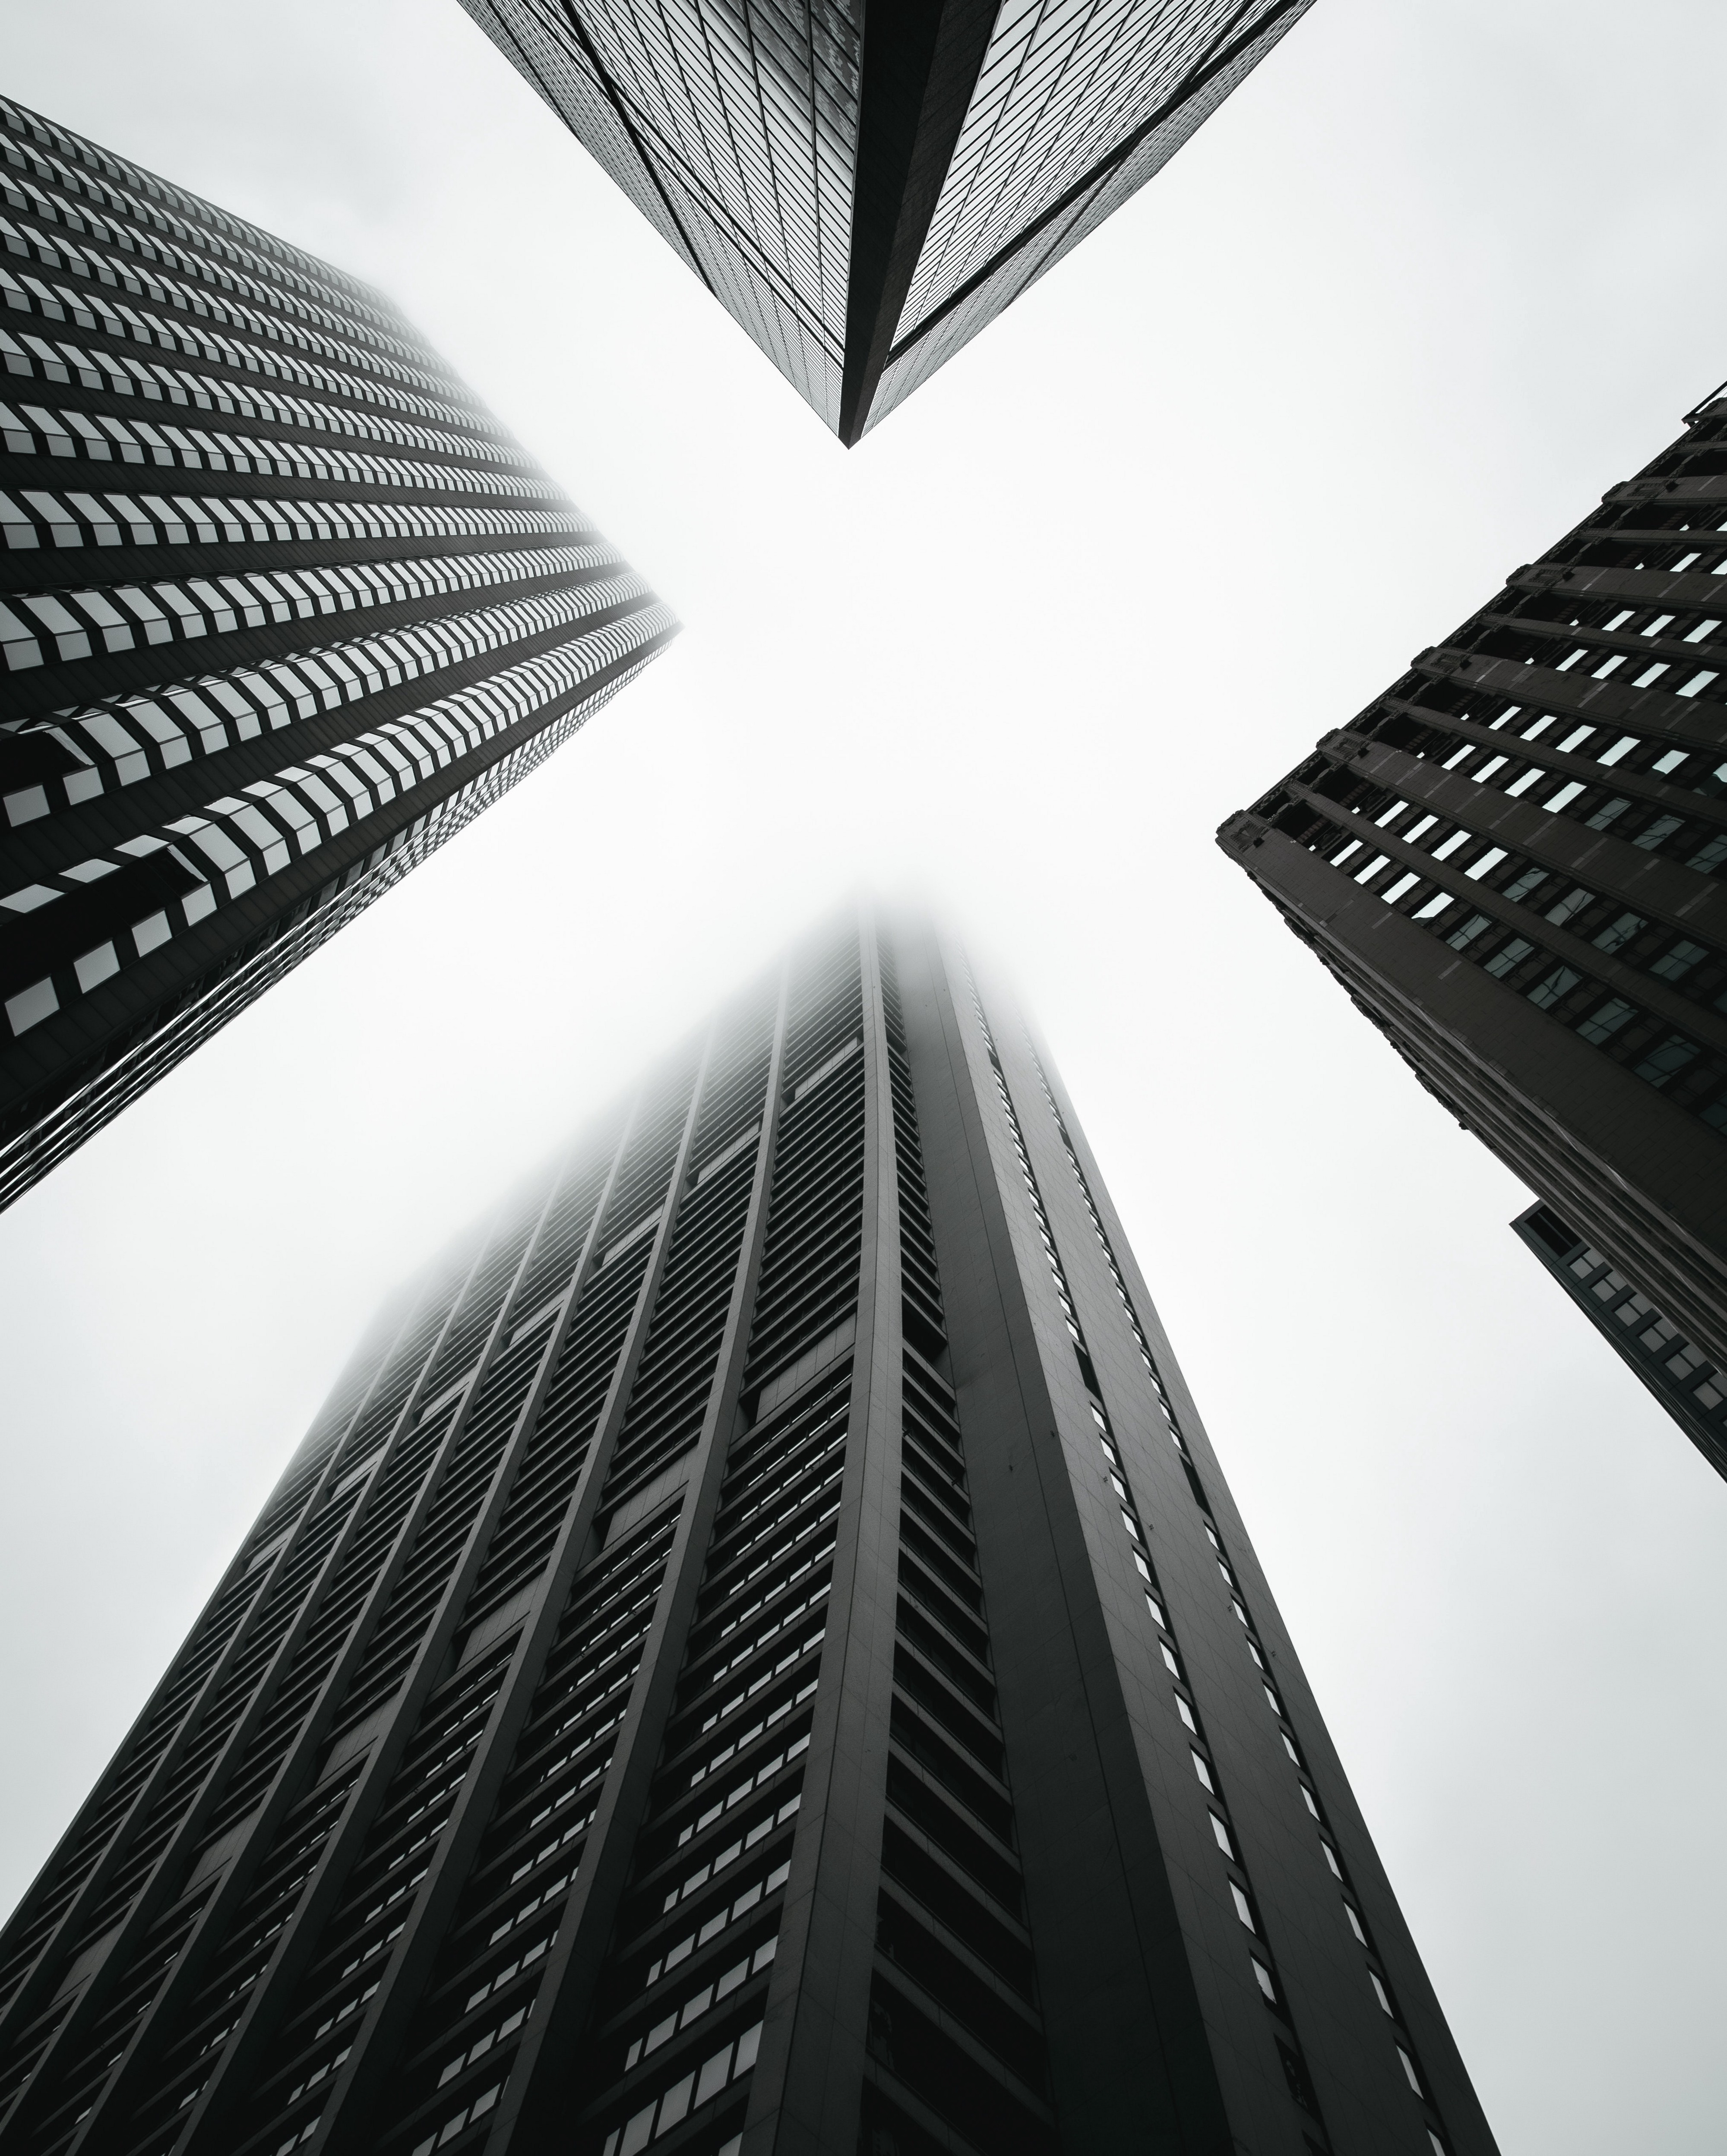 Tall buildings rise into the sky. Black-and-white photo.